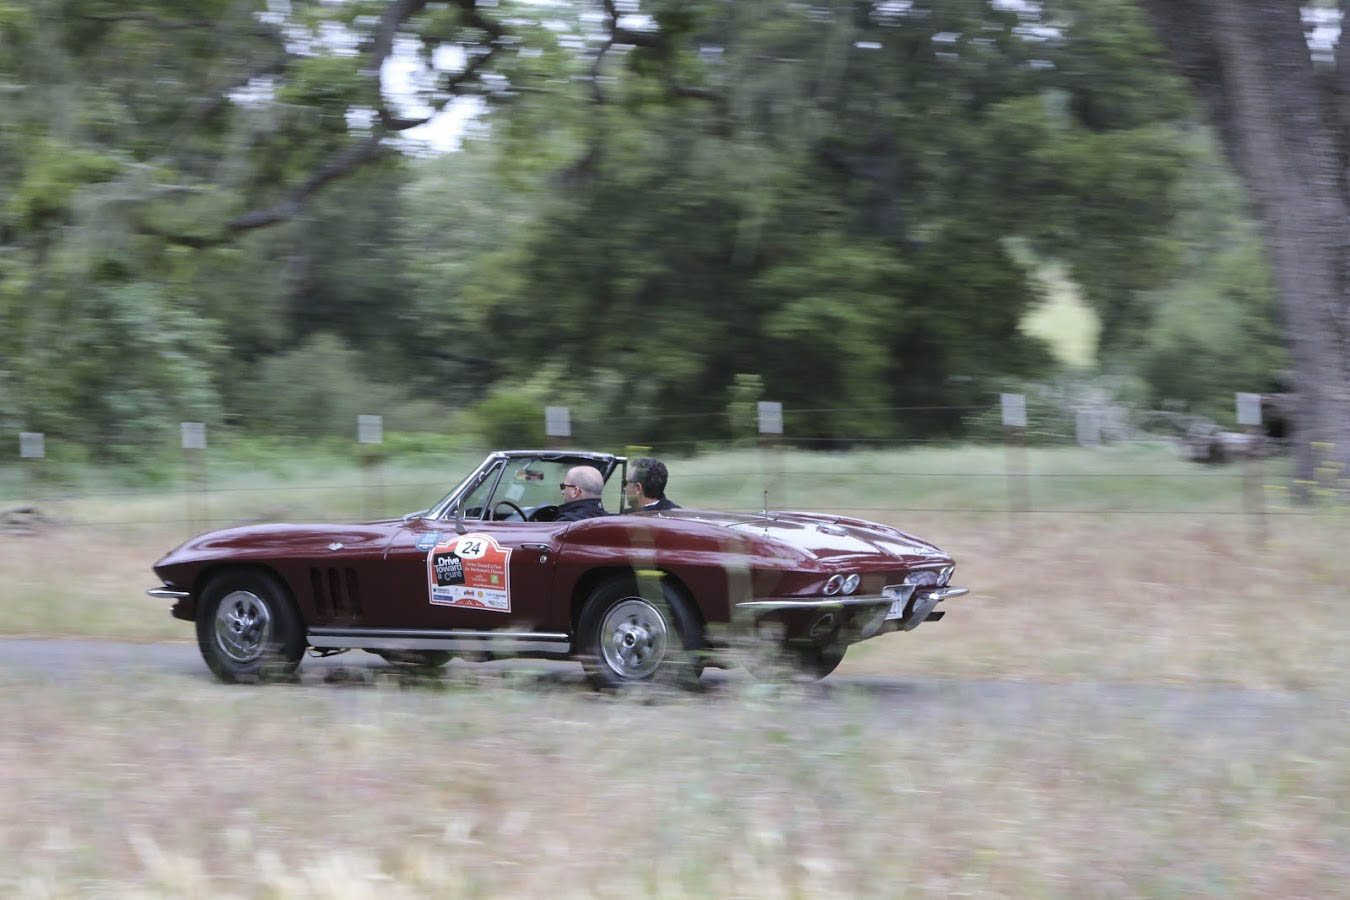 1965 Chevrolet Corvette driving through a field